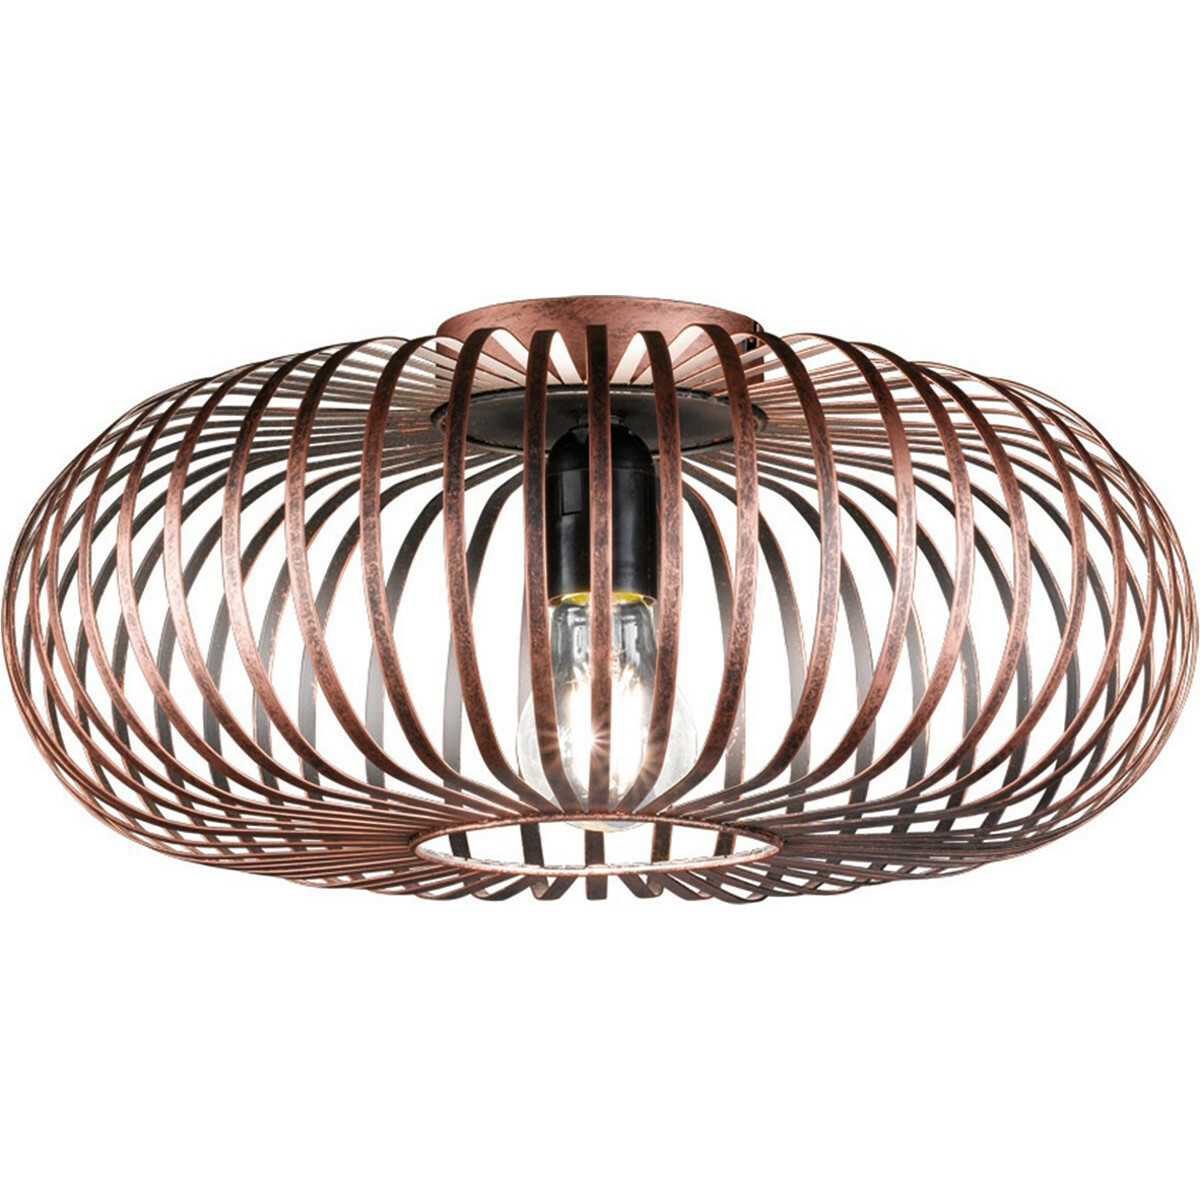 PHILIPS - LED Plafondlamp - SceneSwitch Filament 827 A60 - Trion Johy - E27 Fitting - Dimbaar - 1.6W